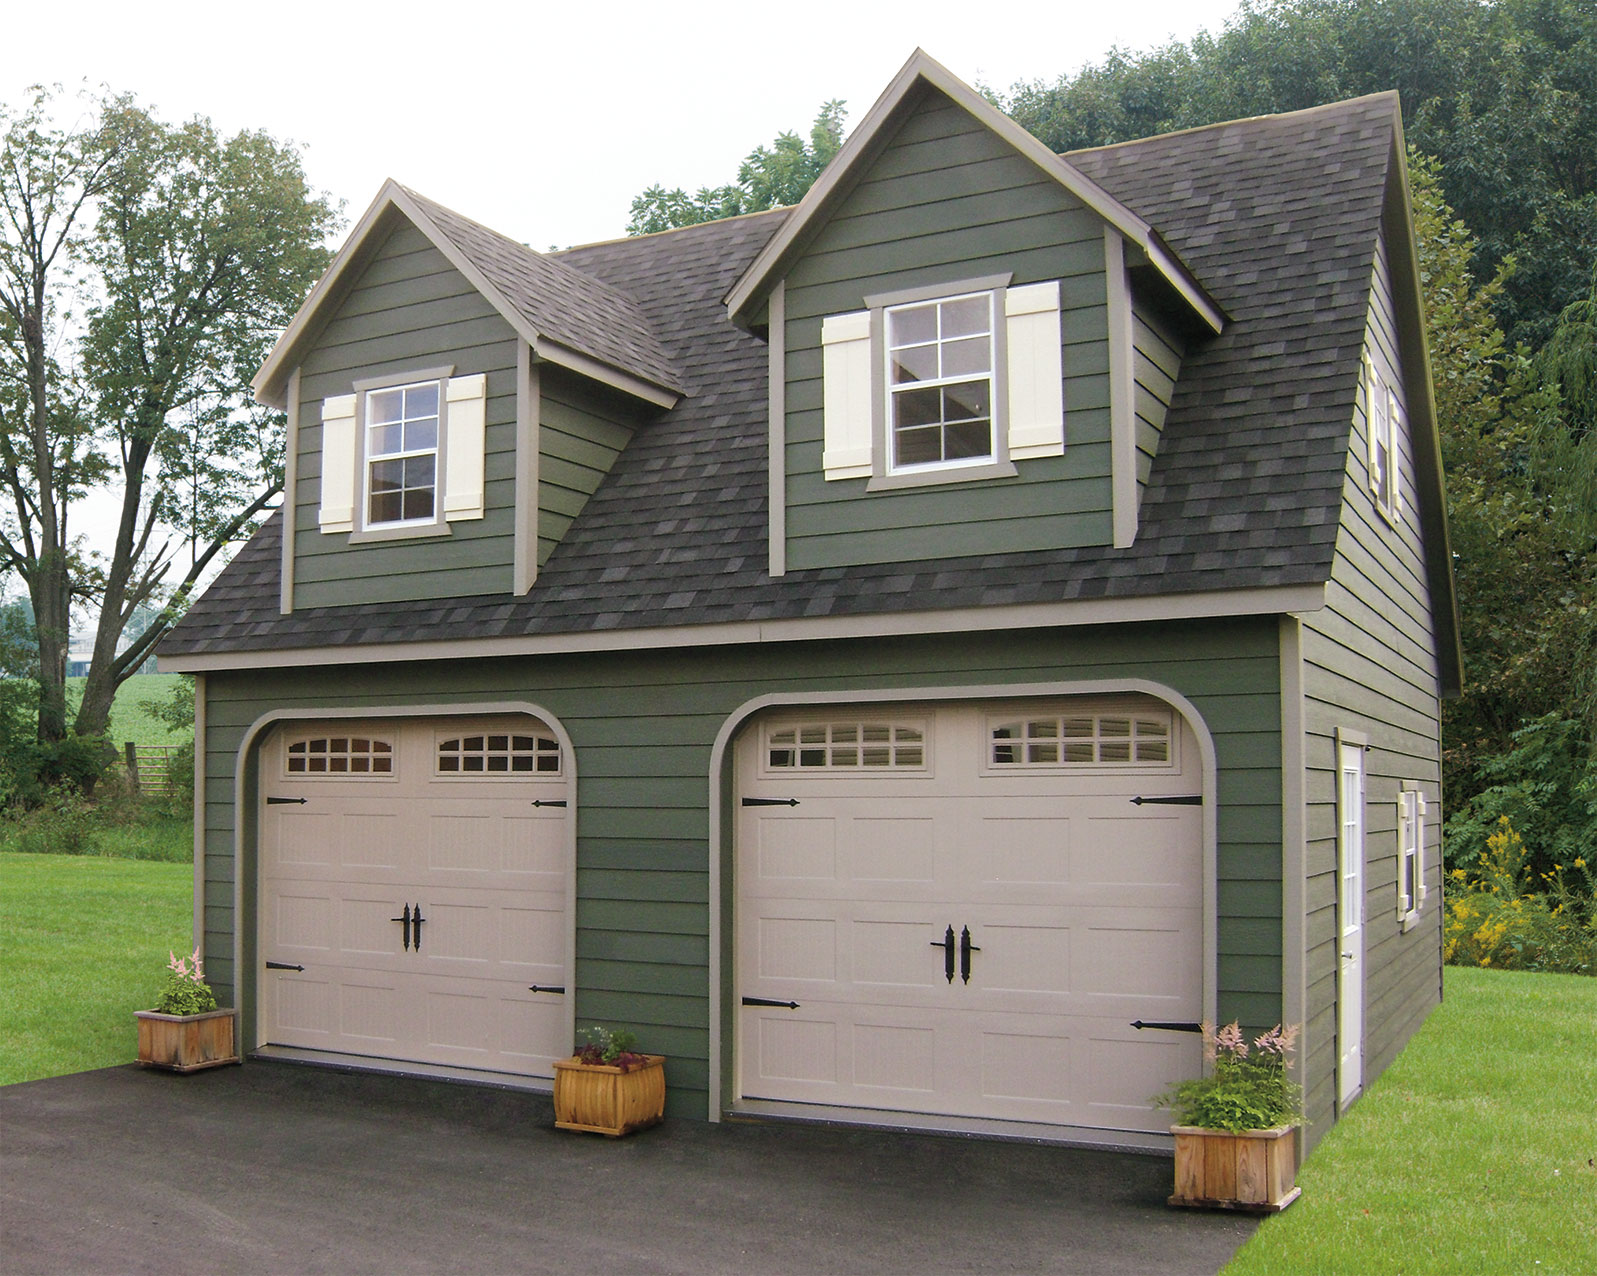 Built on site custom amish garages in oneonta ny amish for Double story garage